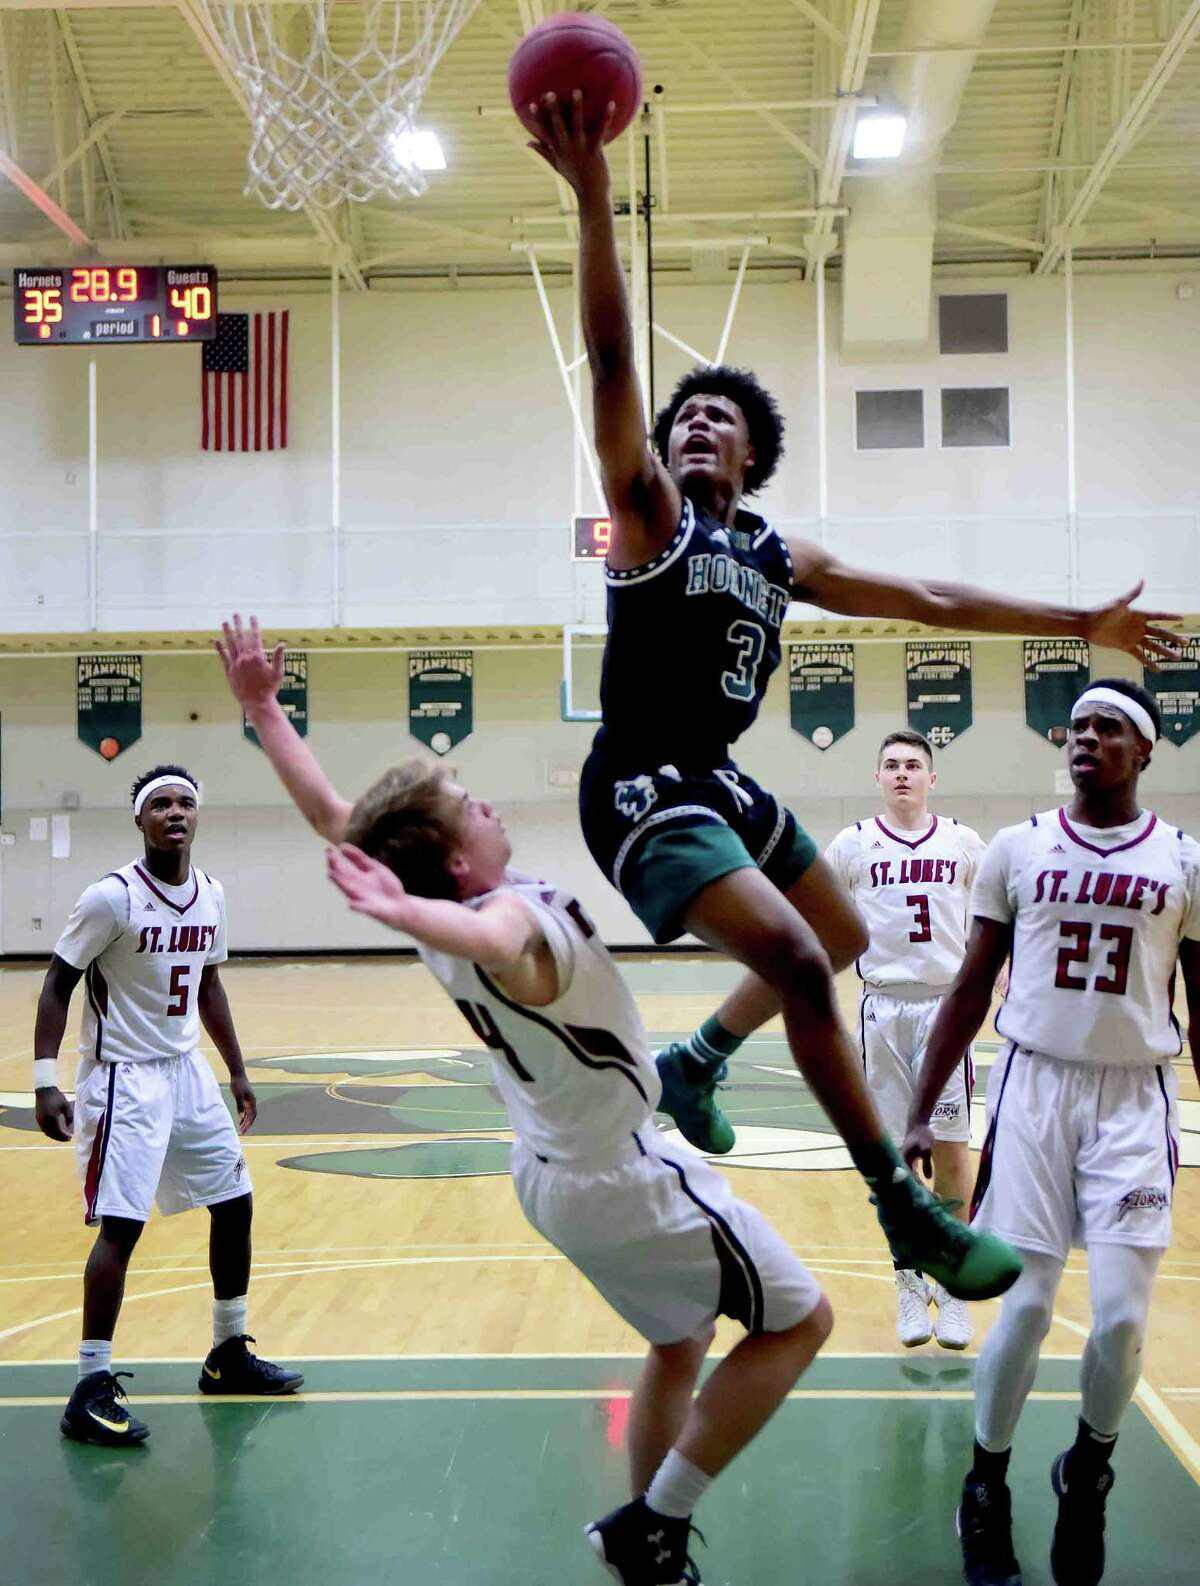 (Peter Hvizdak - New Haven Register) John Wisdom of St. Luke's of New Canaan gets a charge call, left, against TJ Rountree (CQ) of Hamden Hall, right, basketball during first half basketball at Hamden Hall Monday, December 12, 2016,